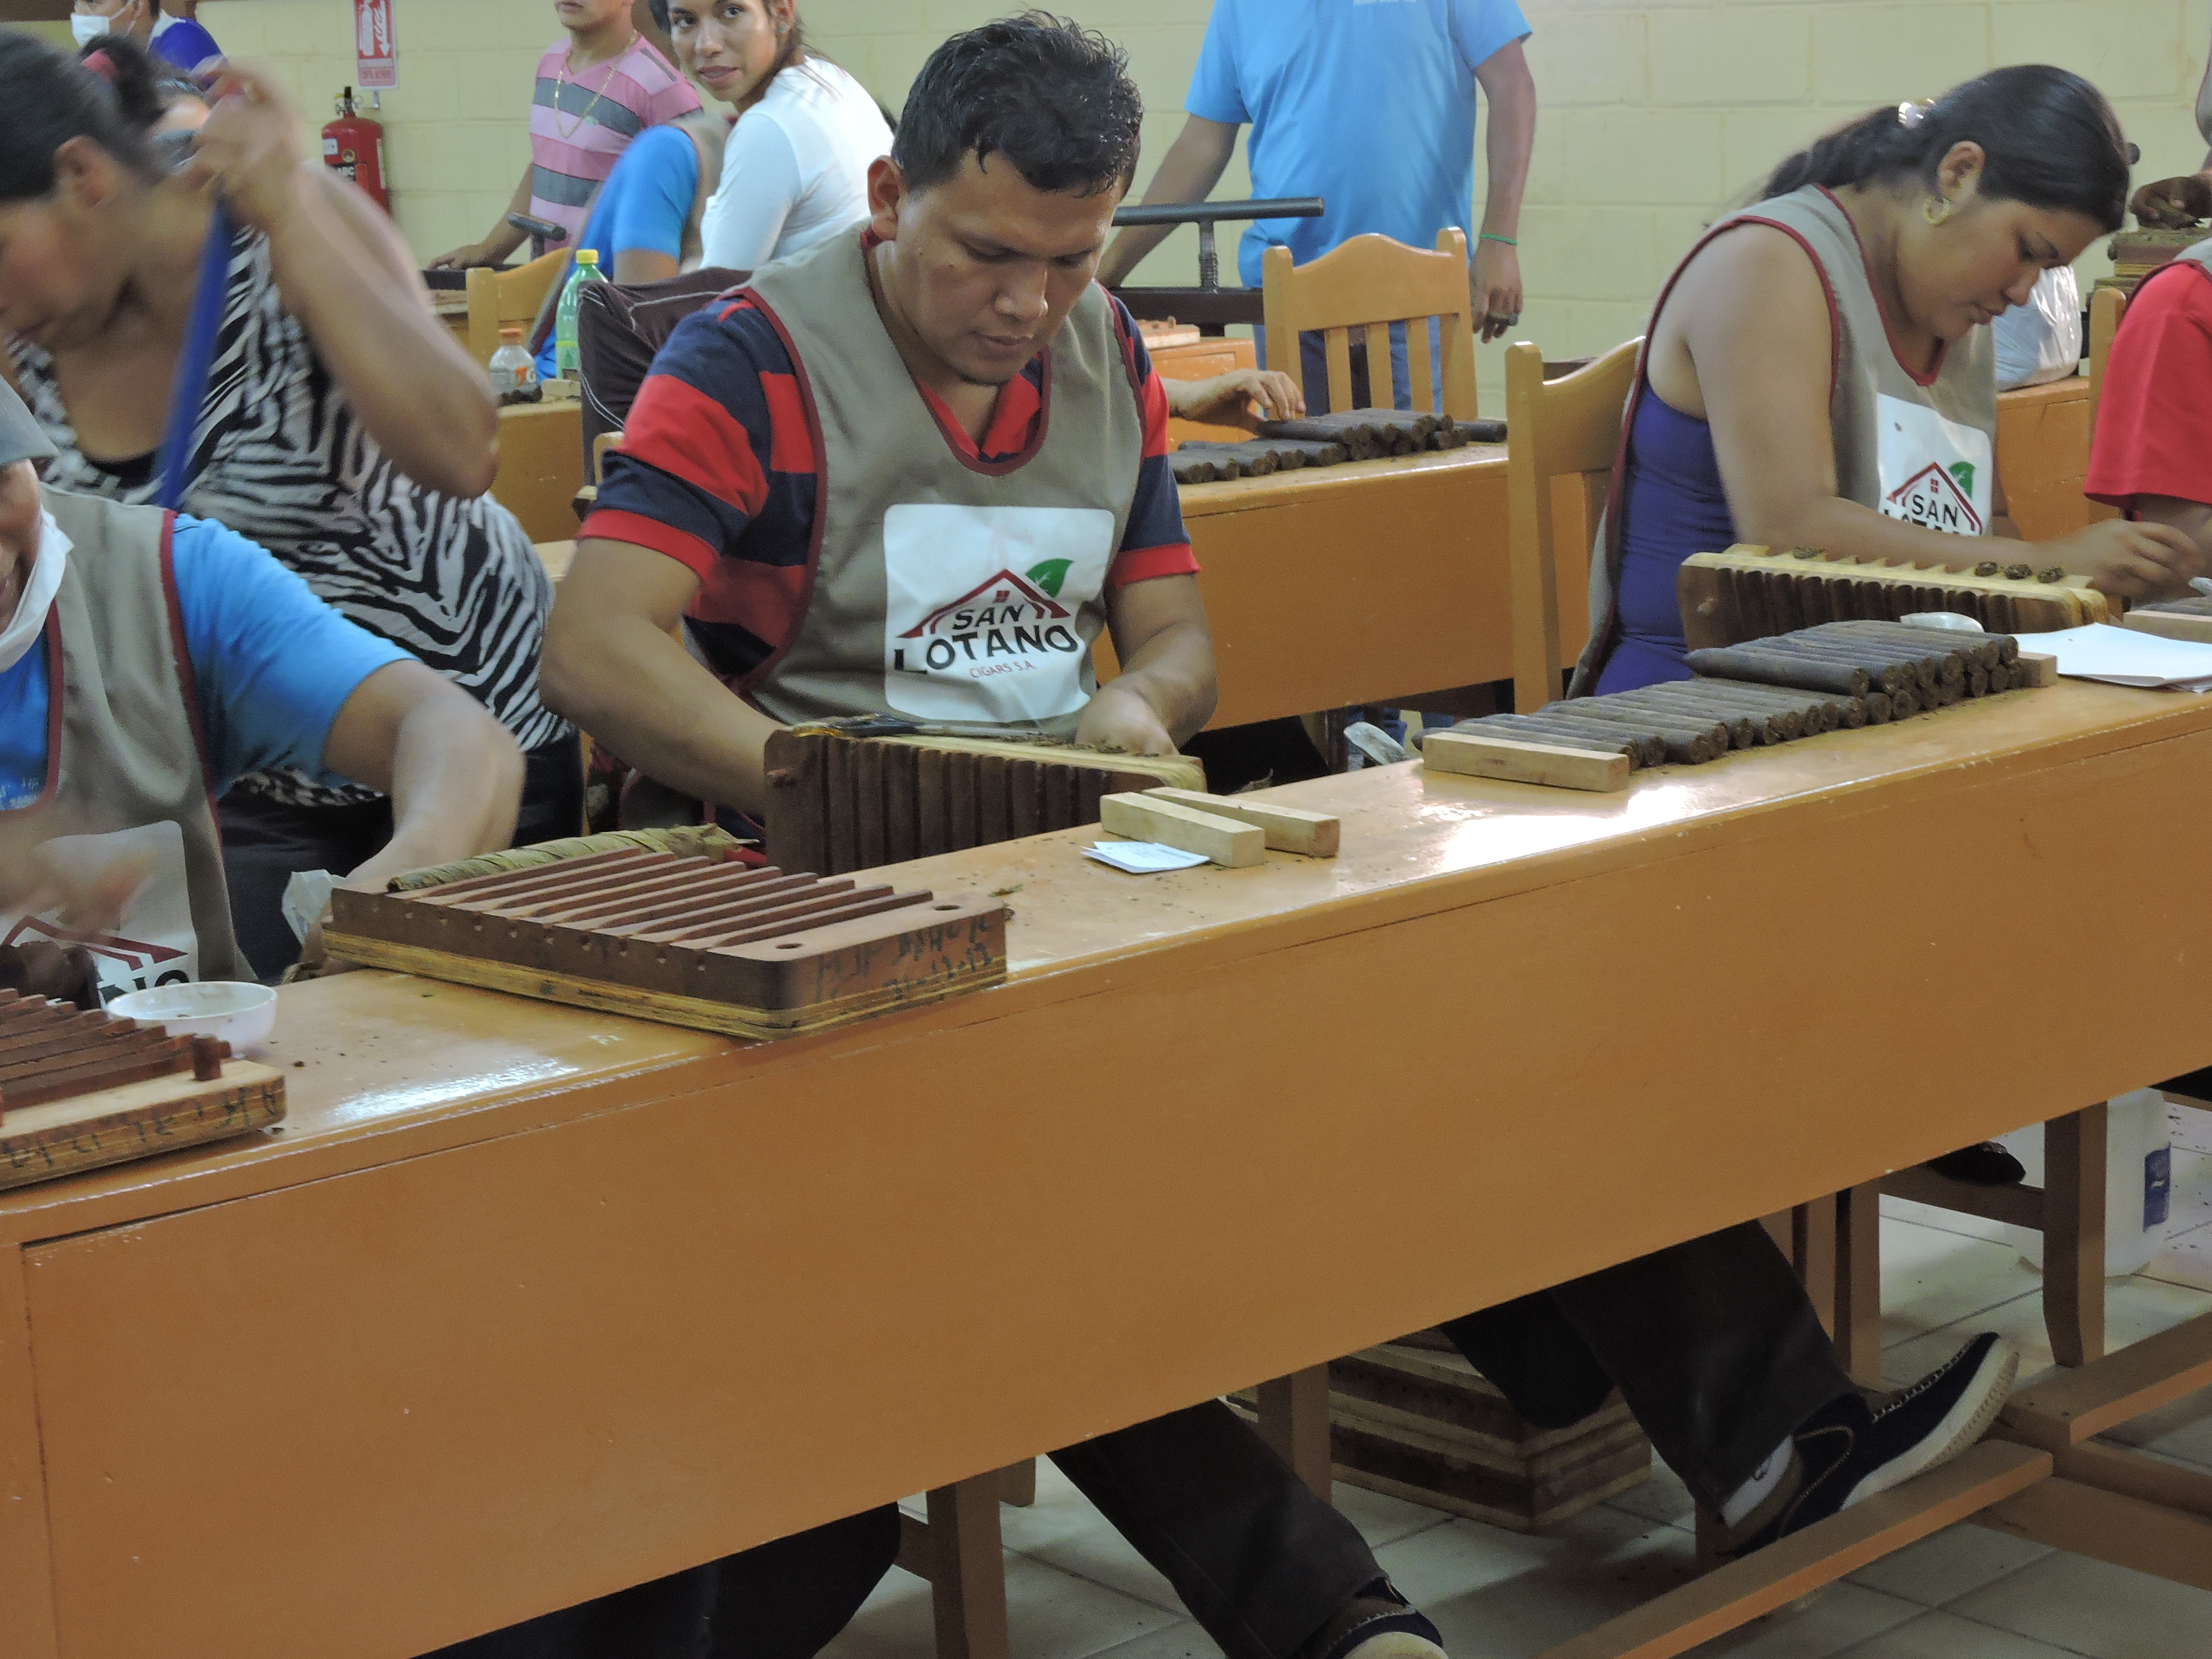 San_Lotano_Factory_Workers